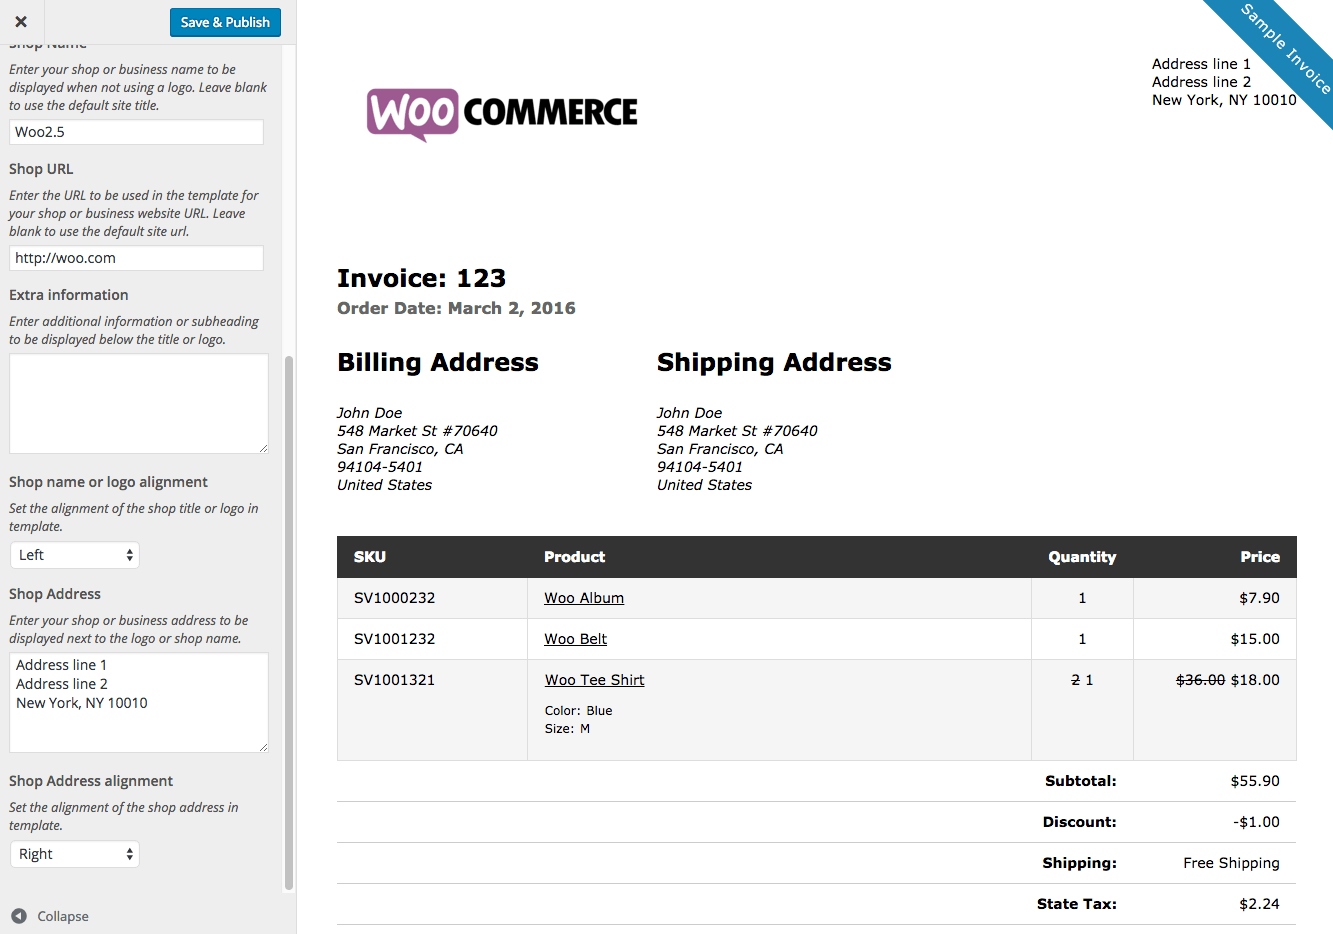 Coachoutletonlineplusus  Scenic Print Invoices Amp Packing Lists  Woocommerce With Great Woocommerce Print Invoices  Packing Lists Customizer With Extraordinary Vehicle Sales Receipt Template Also Work Order Receipt Template In Addition Eggplant Receipts And Receipt Apps For Iphone As Well As Mobile Receipt Printers Additionally Create Receipt App From Woocommercecom With Coachoutletonlineplusus  Great Print Invoices Amp Packing Lists  Woocommerce With Extraordinary Woocommerce Print Invoices  Packing Lists Customizer And Scenic Vehicle Sales Receipt Template Also Work Order Receipt Template In Addition Eggplant Receipts From Woocommercecom